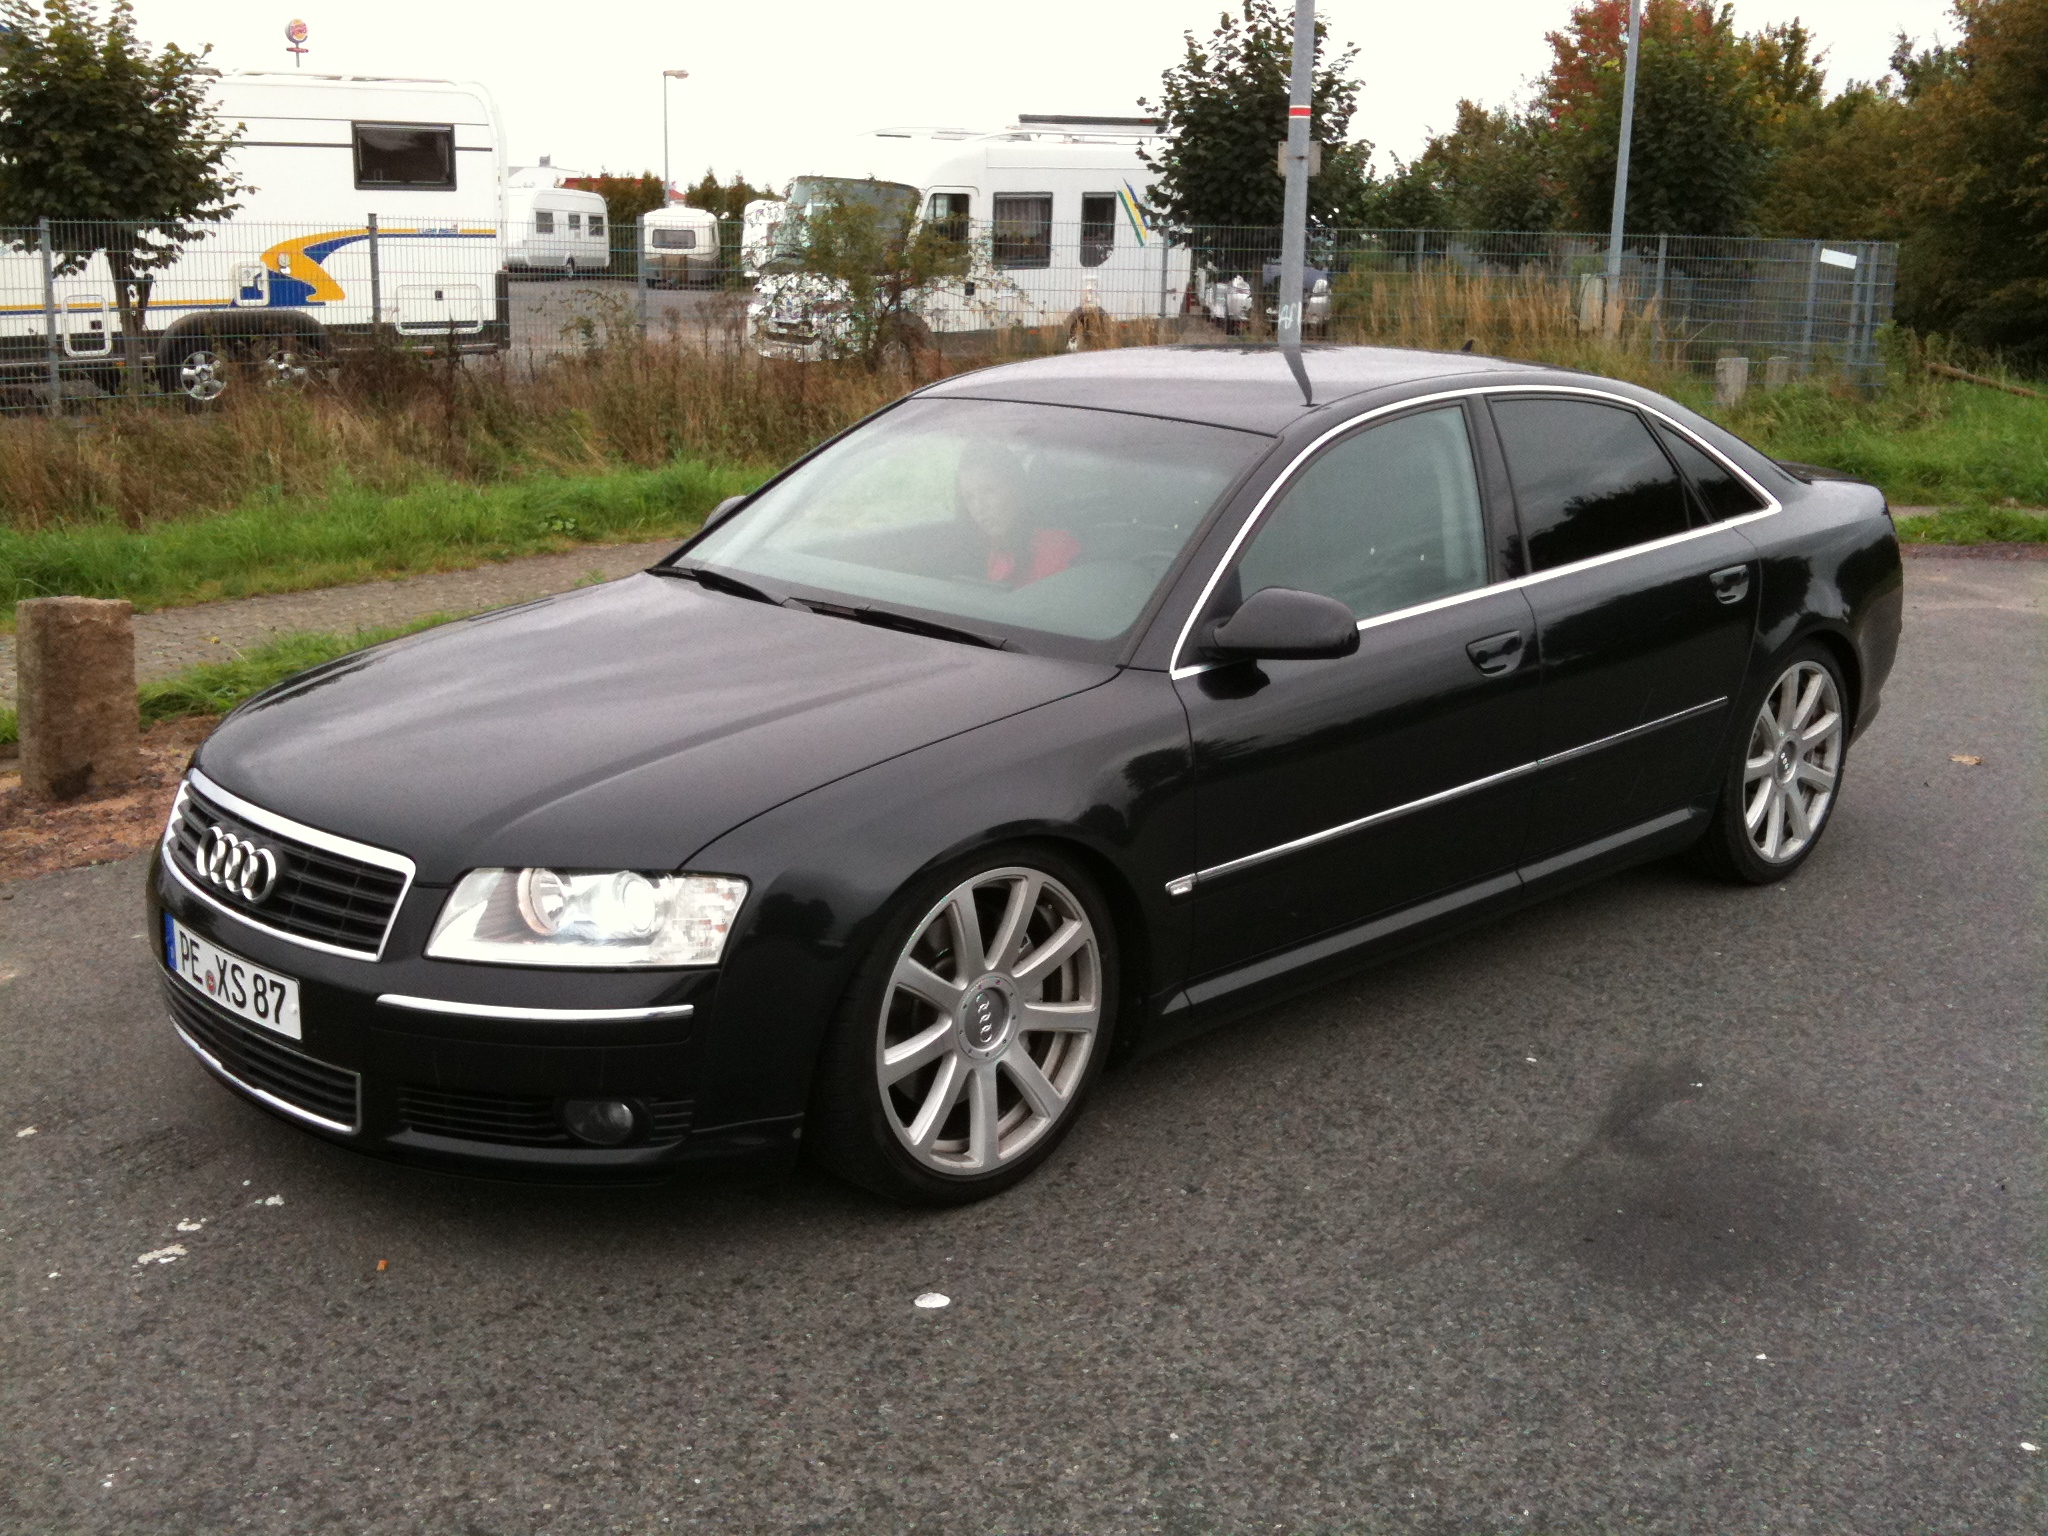 coltharpfamilygoldenyears 19 Awesome Audi Car A4 2048x1536